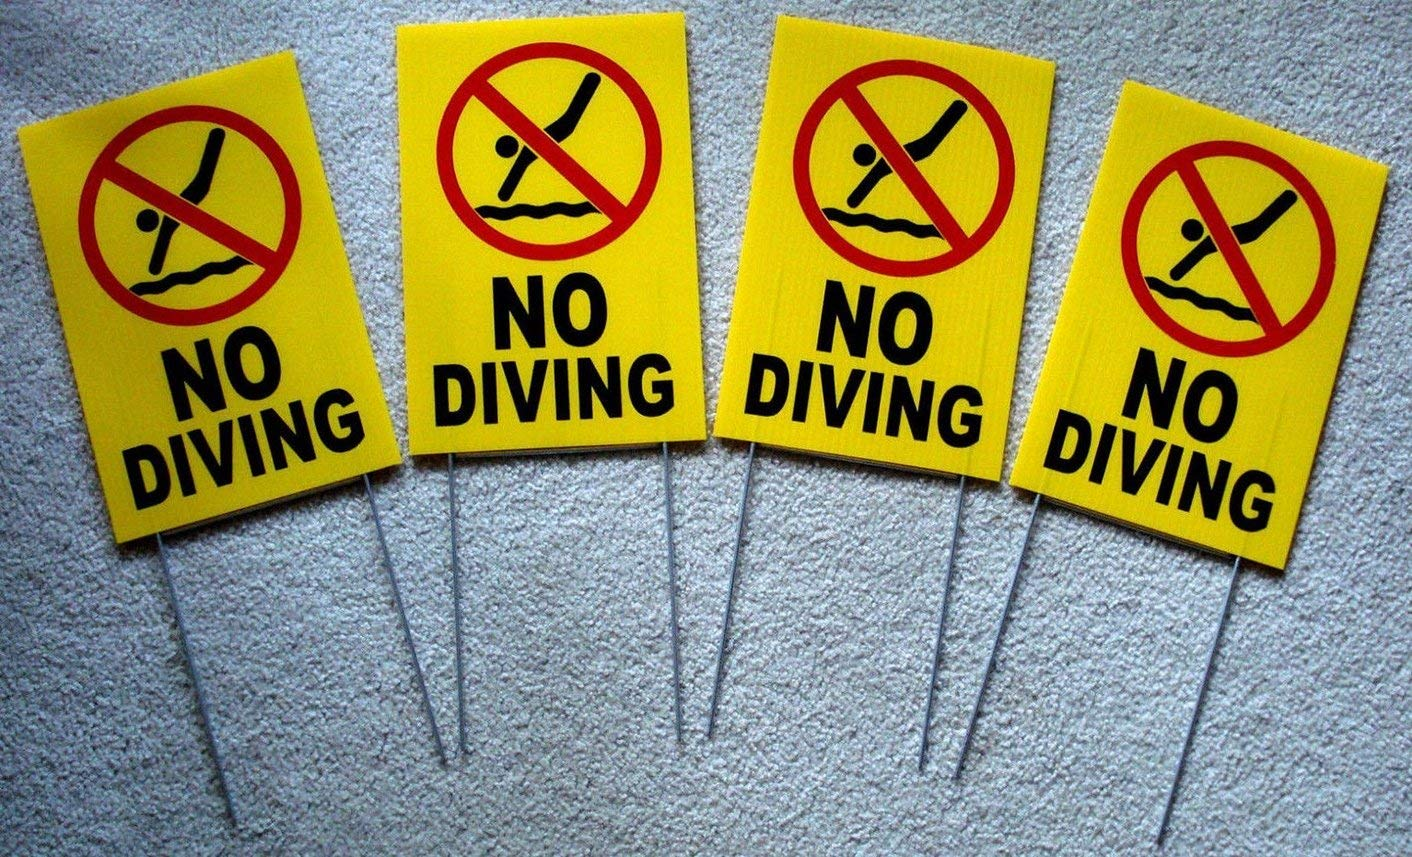 Swall 4 Pc Heart Stirring Unique No Diving Symbol Yard Signs Beach Coroplast Plastic Message Swiming Declare Lifeguard On Duty Pools Decor Stand Decal Warning Post at Your Own Risk Size 8 X12 W/ by Eletina Staring